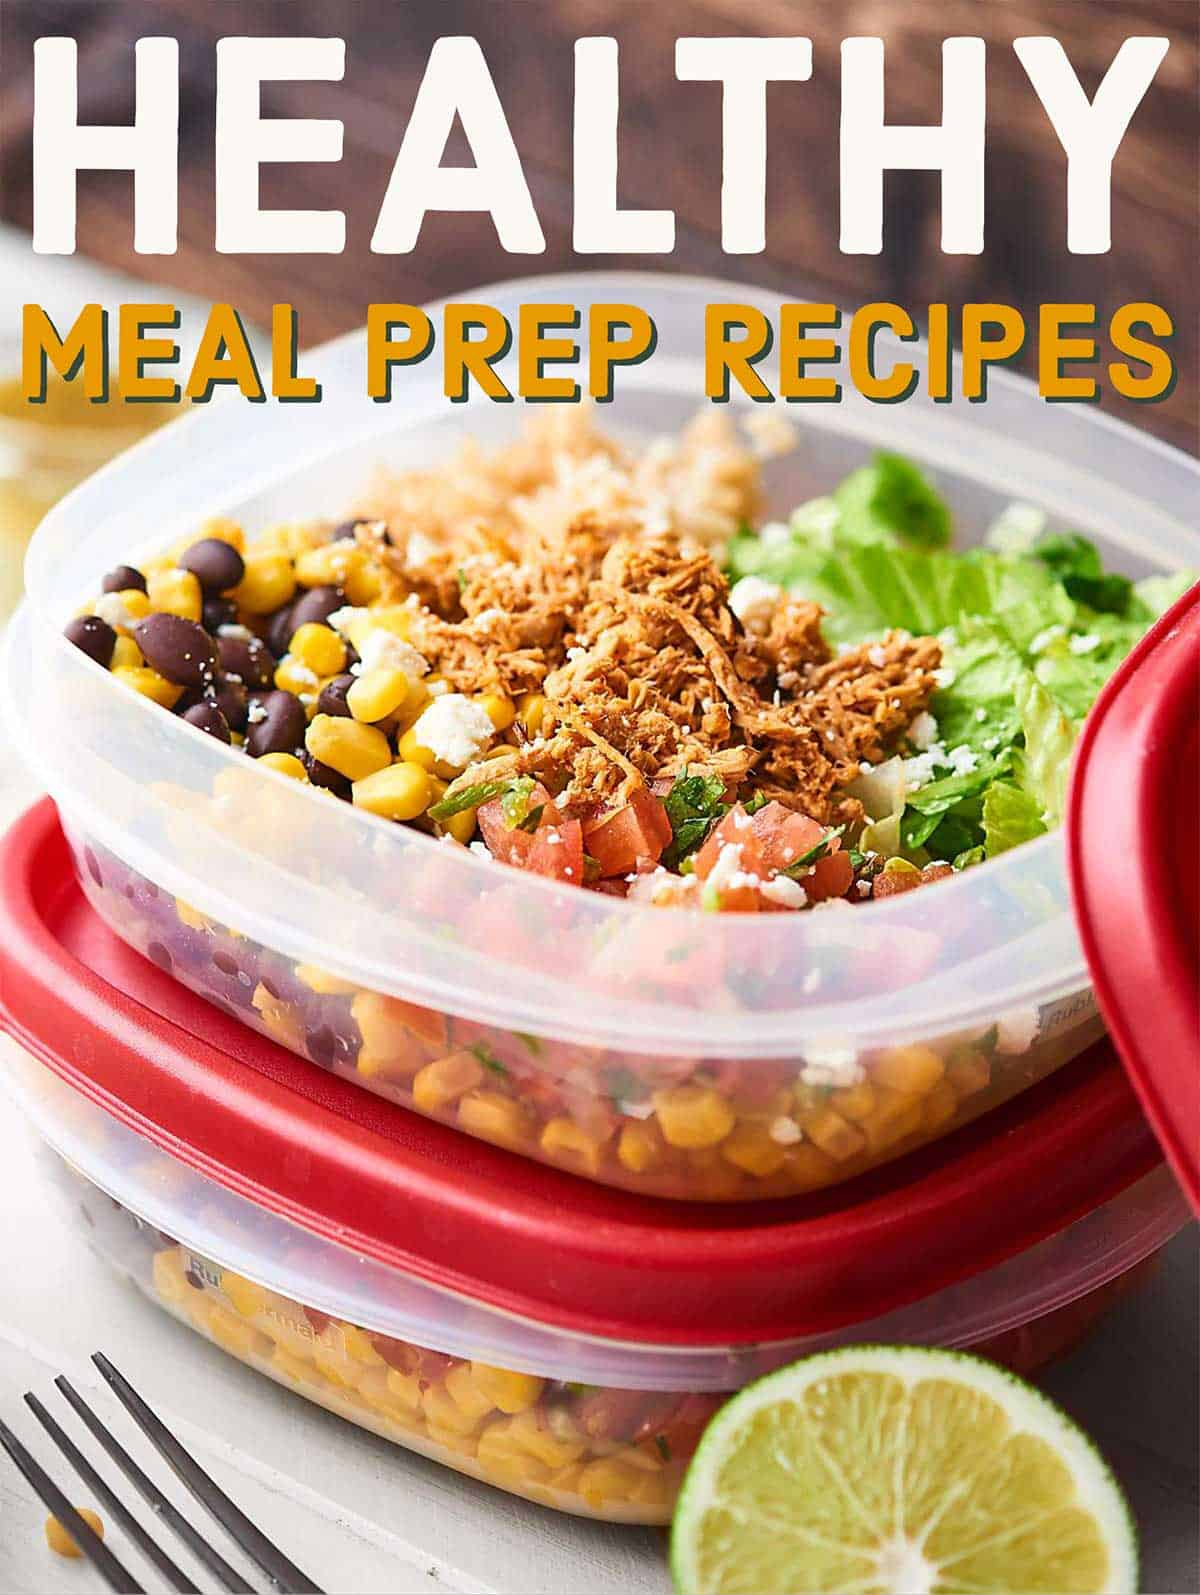 Healthy meal prep recipes 2018 show me the yummy healthy meal prep recipes 2018 recipes for breakfast lunch snacks dinner forumfinder Gallery